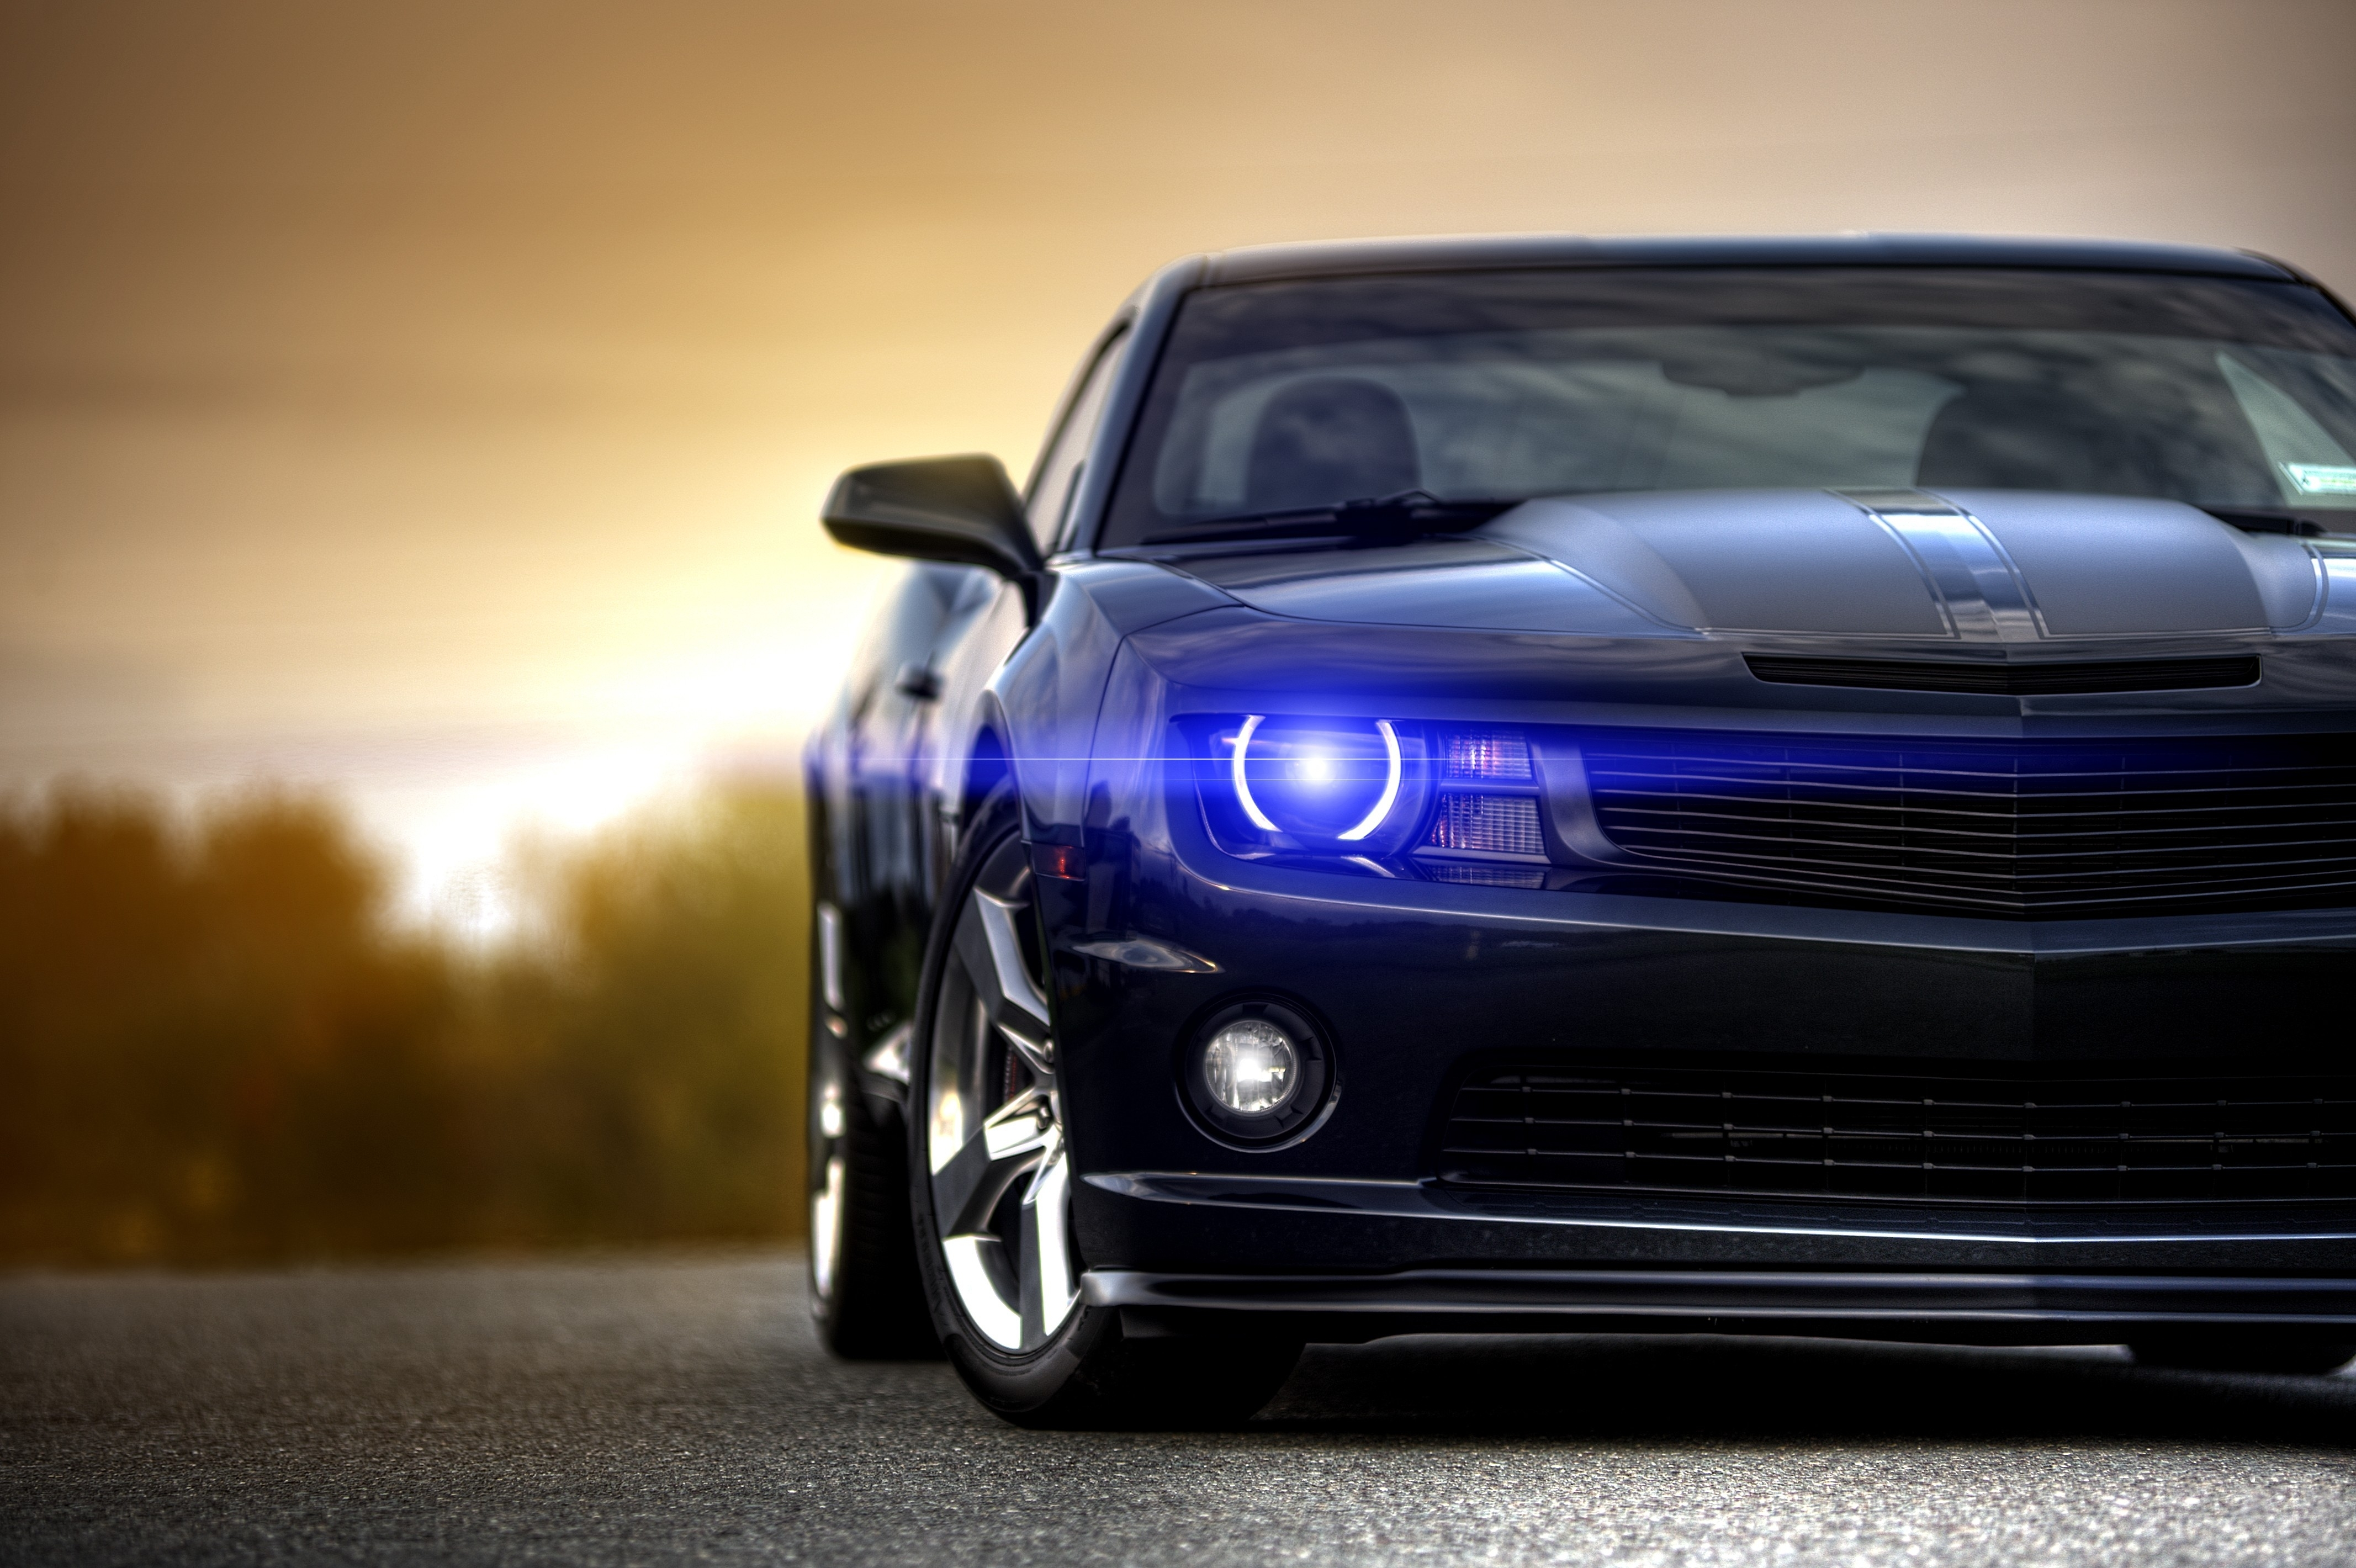 Chevrolet Camaro Full HD Wallpaper